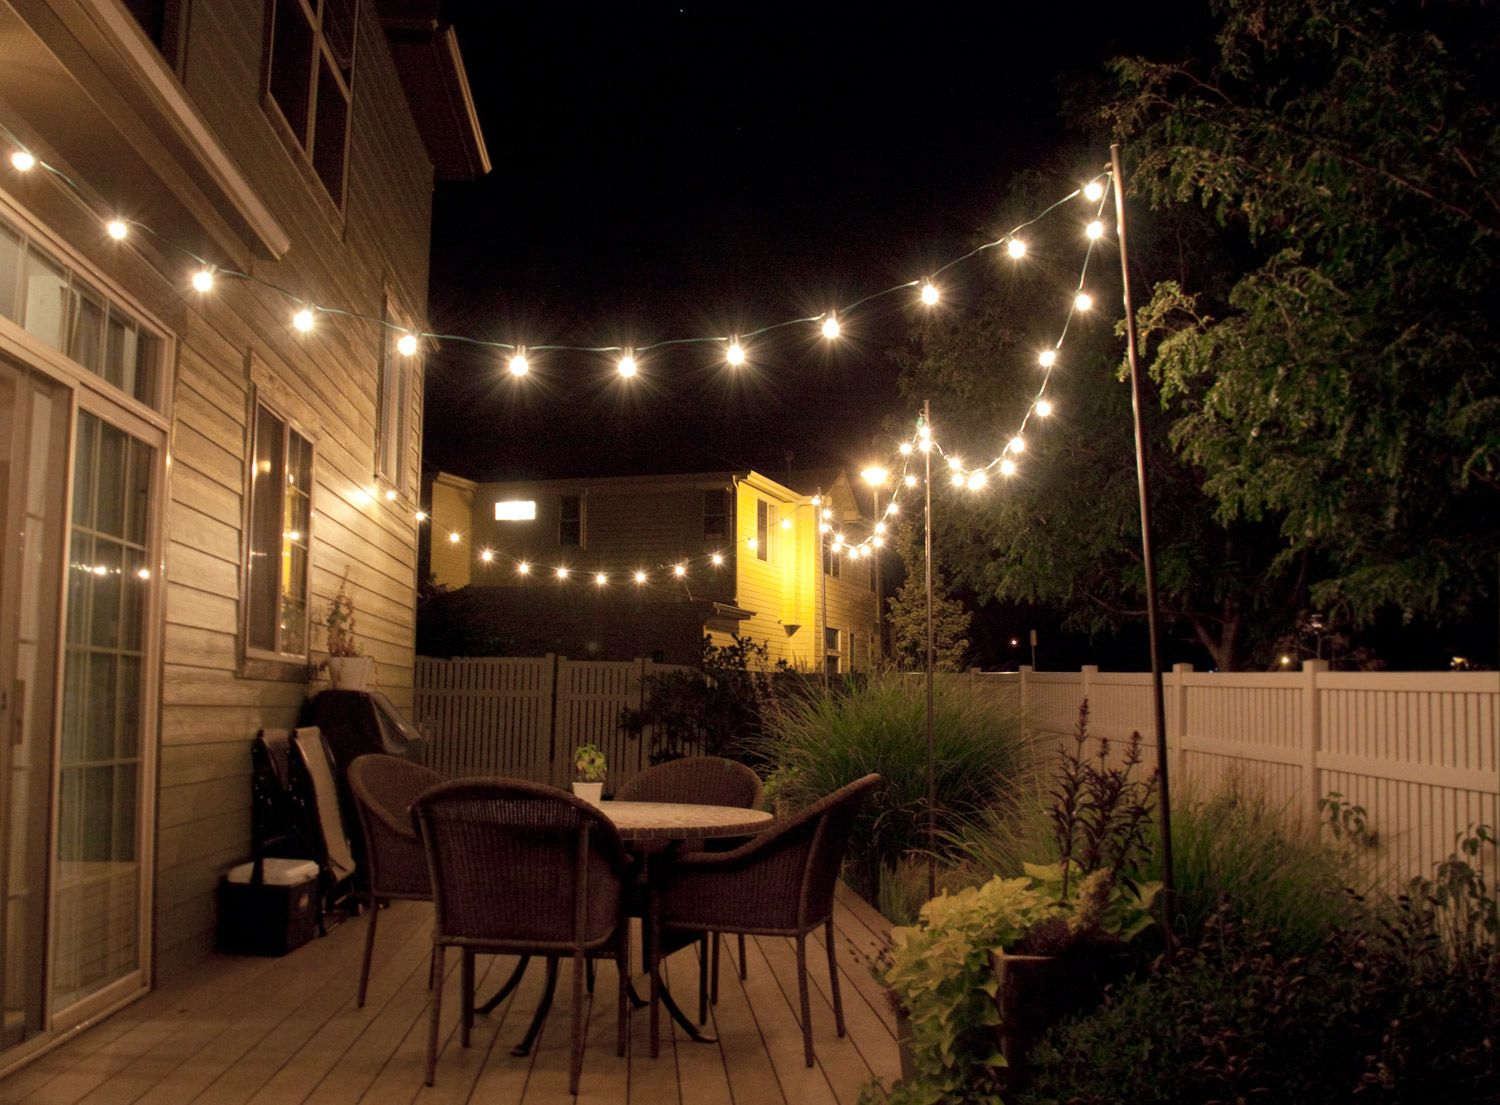 How To Hang String Lights In Backyard Without Trees Classy How To Make Inexpensive Poles To Hang String Lights On  Café Style Design Inspiration